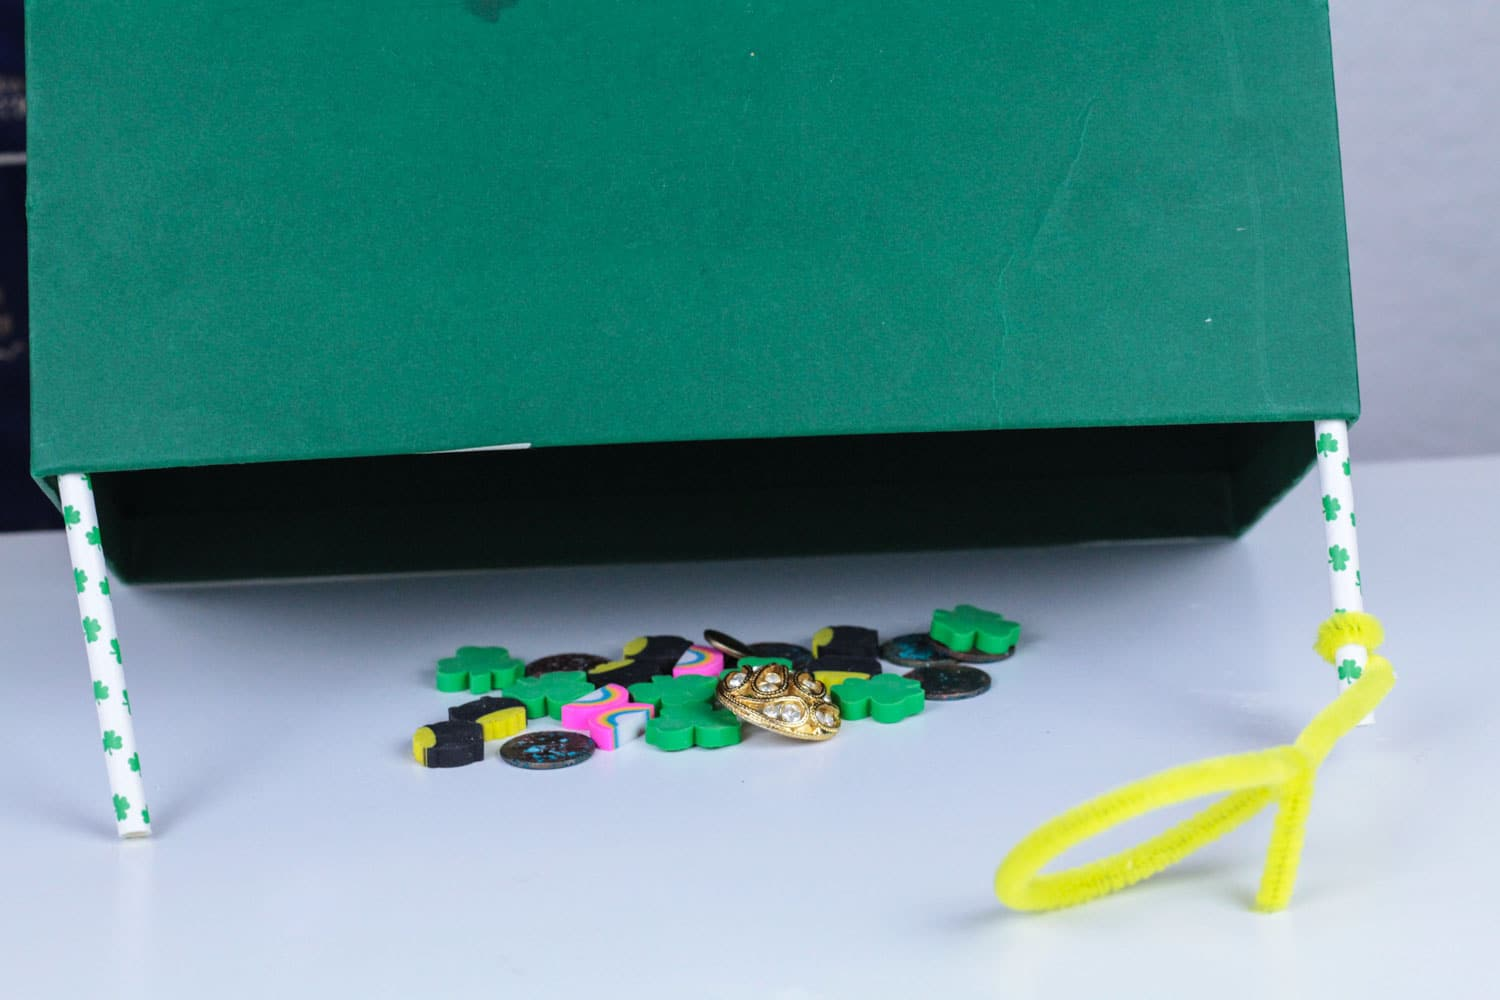 Build STEM skills in a fun way! The leprechaun trap STEM activity is a fun STEM activity for St. Patrick's Day that kids of all ages will love. Try the leprechaun trap challenge in your classroom or at home!